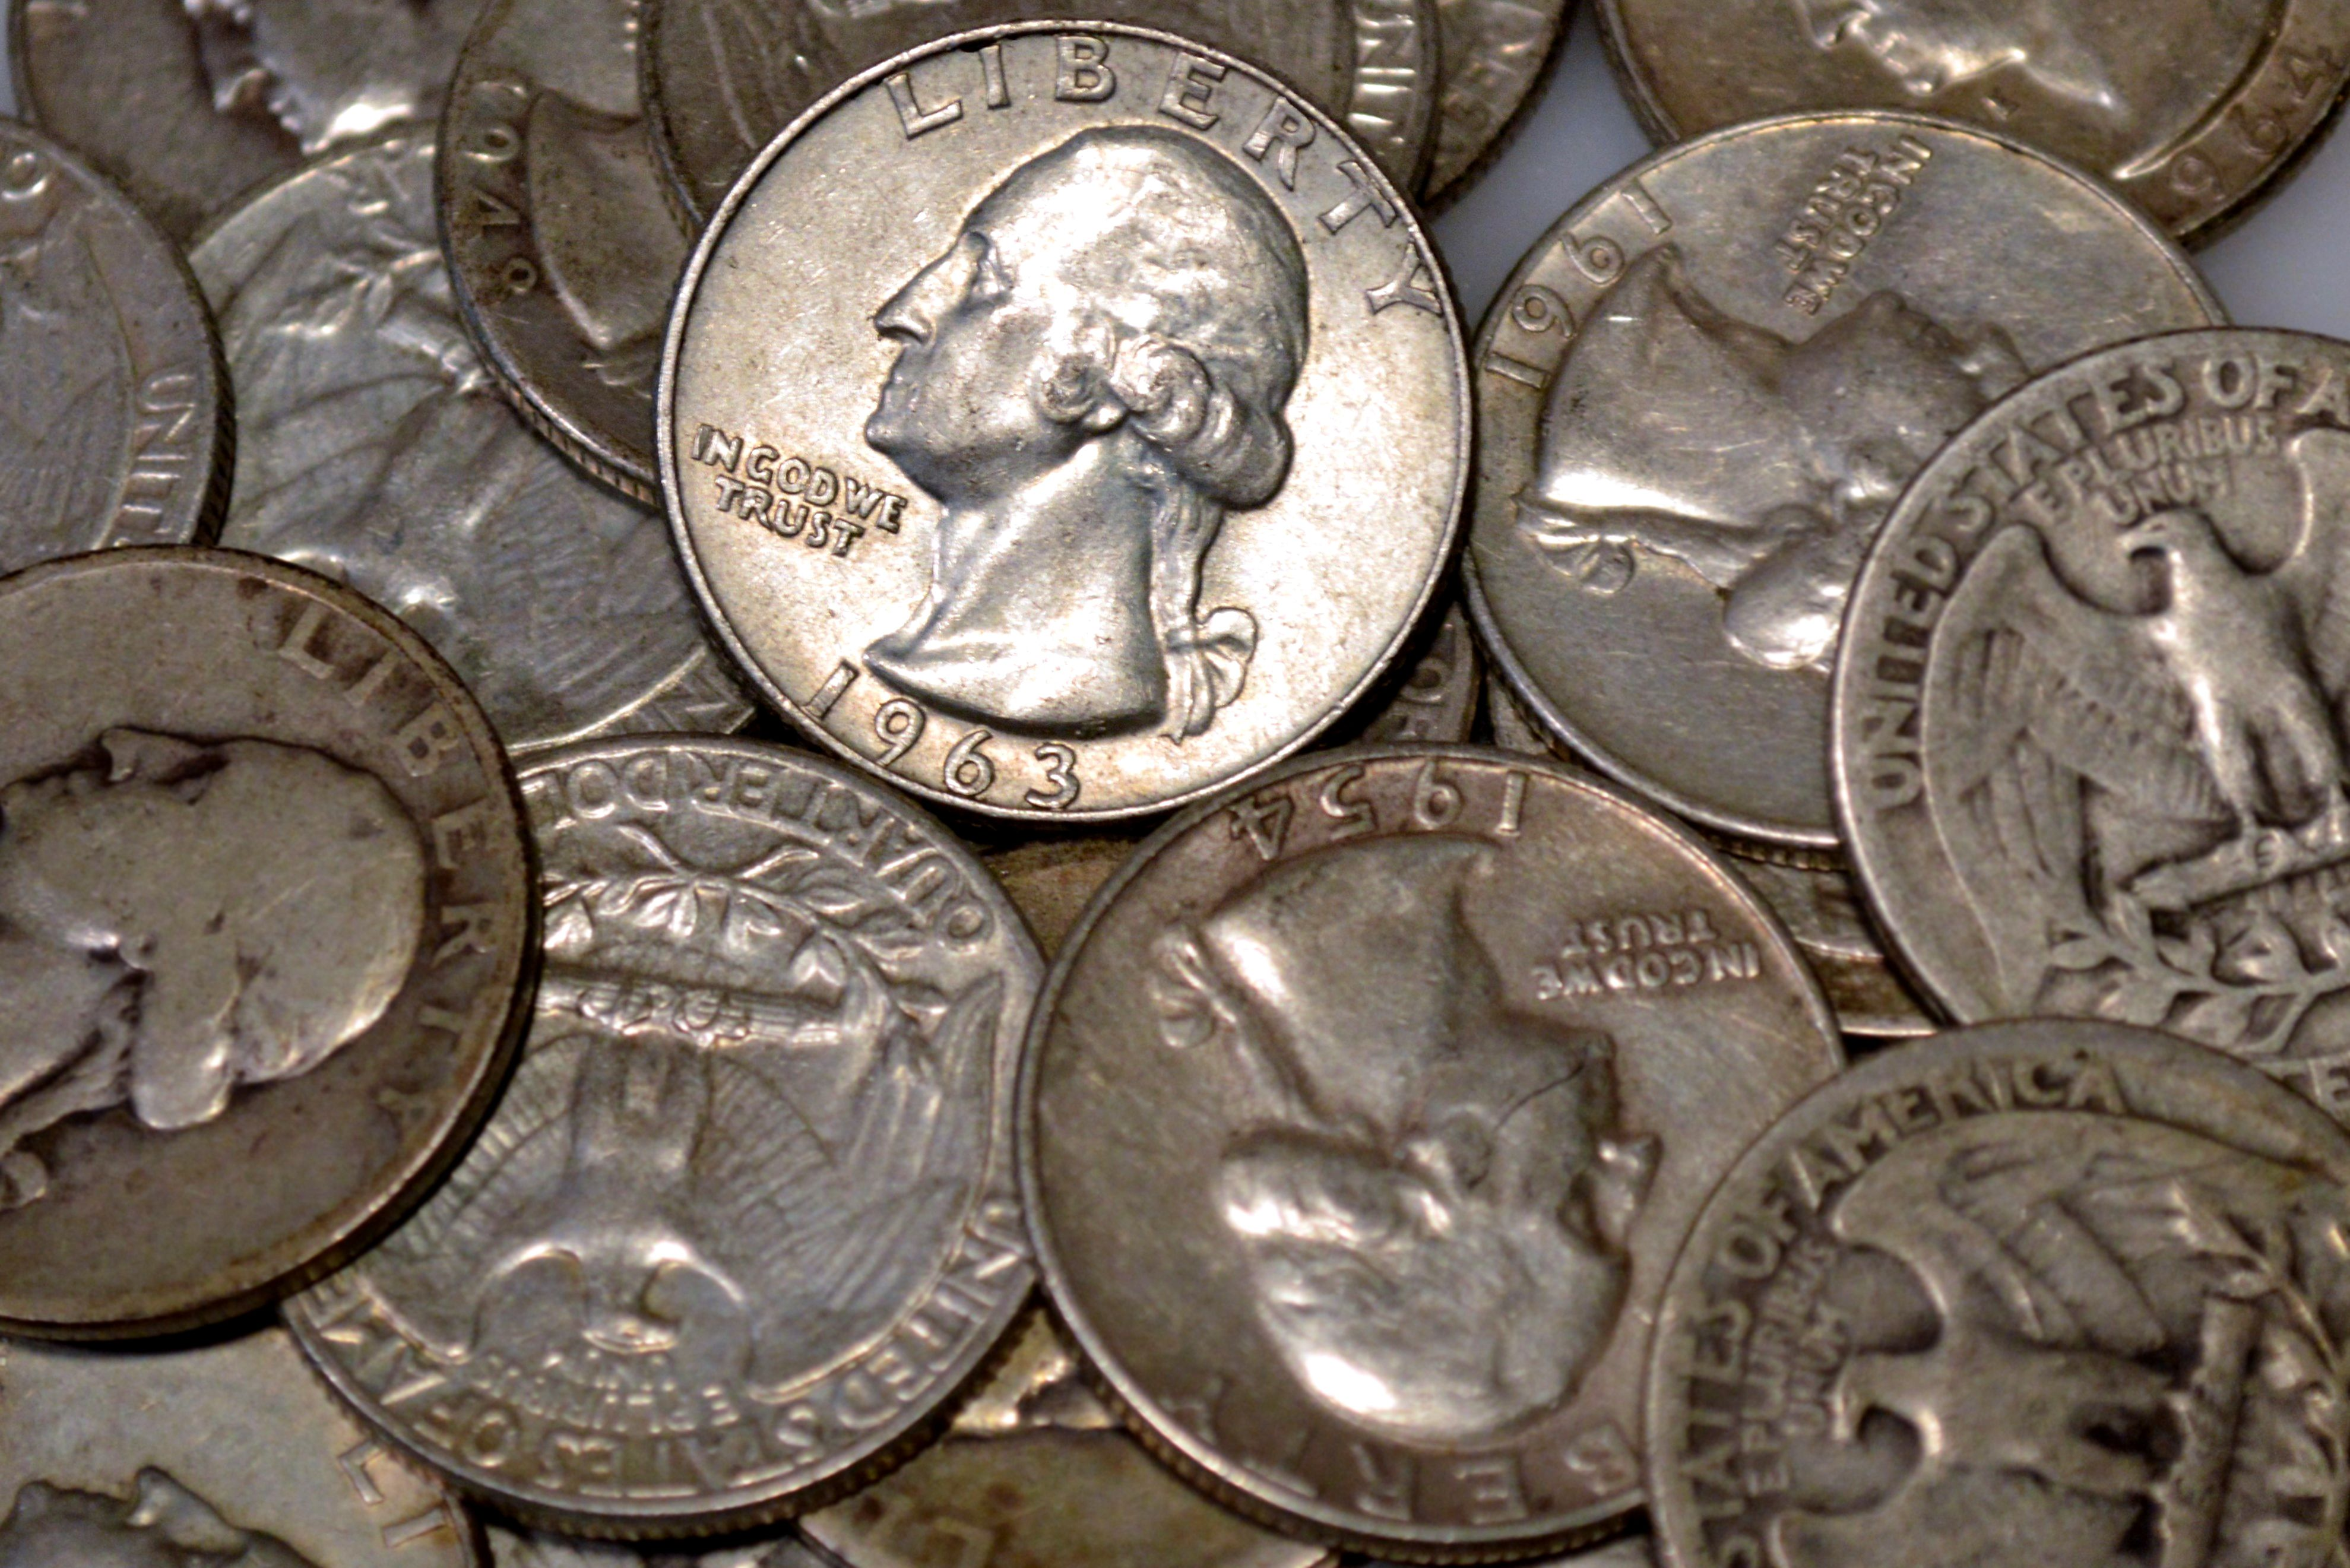 Tips for Collecting Washington Quarters